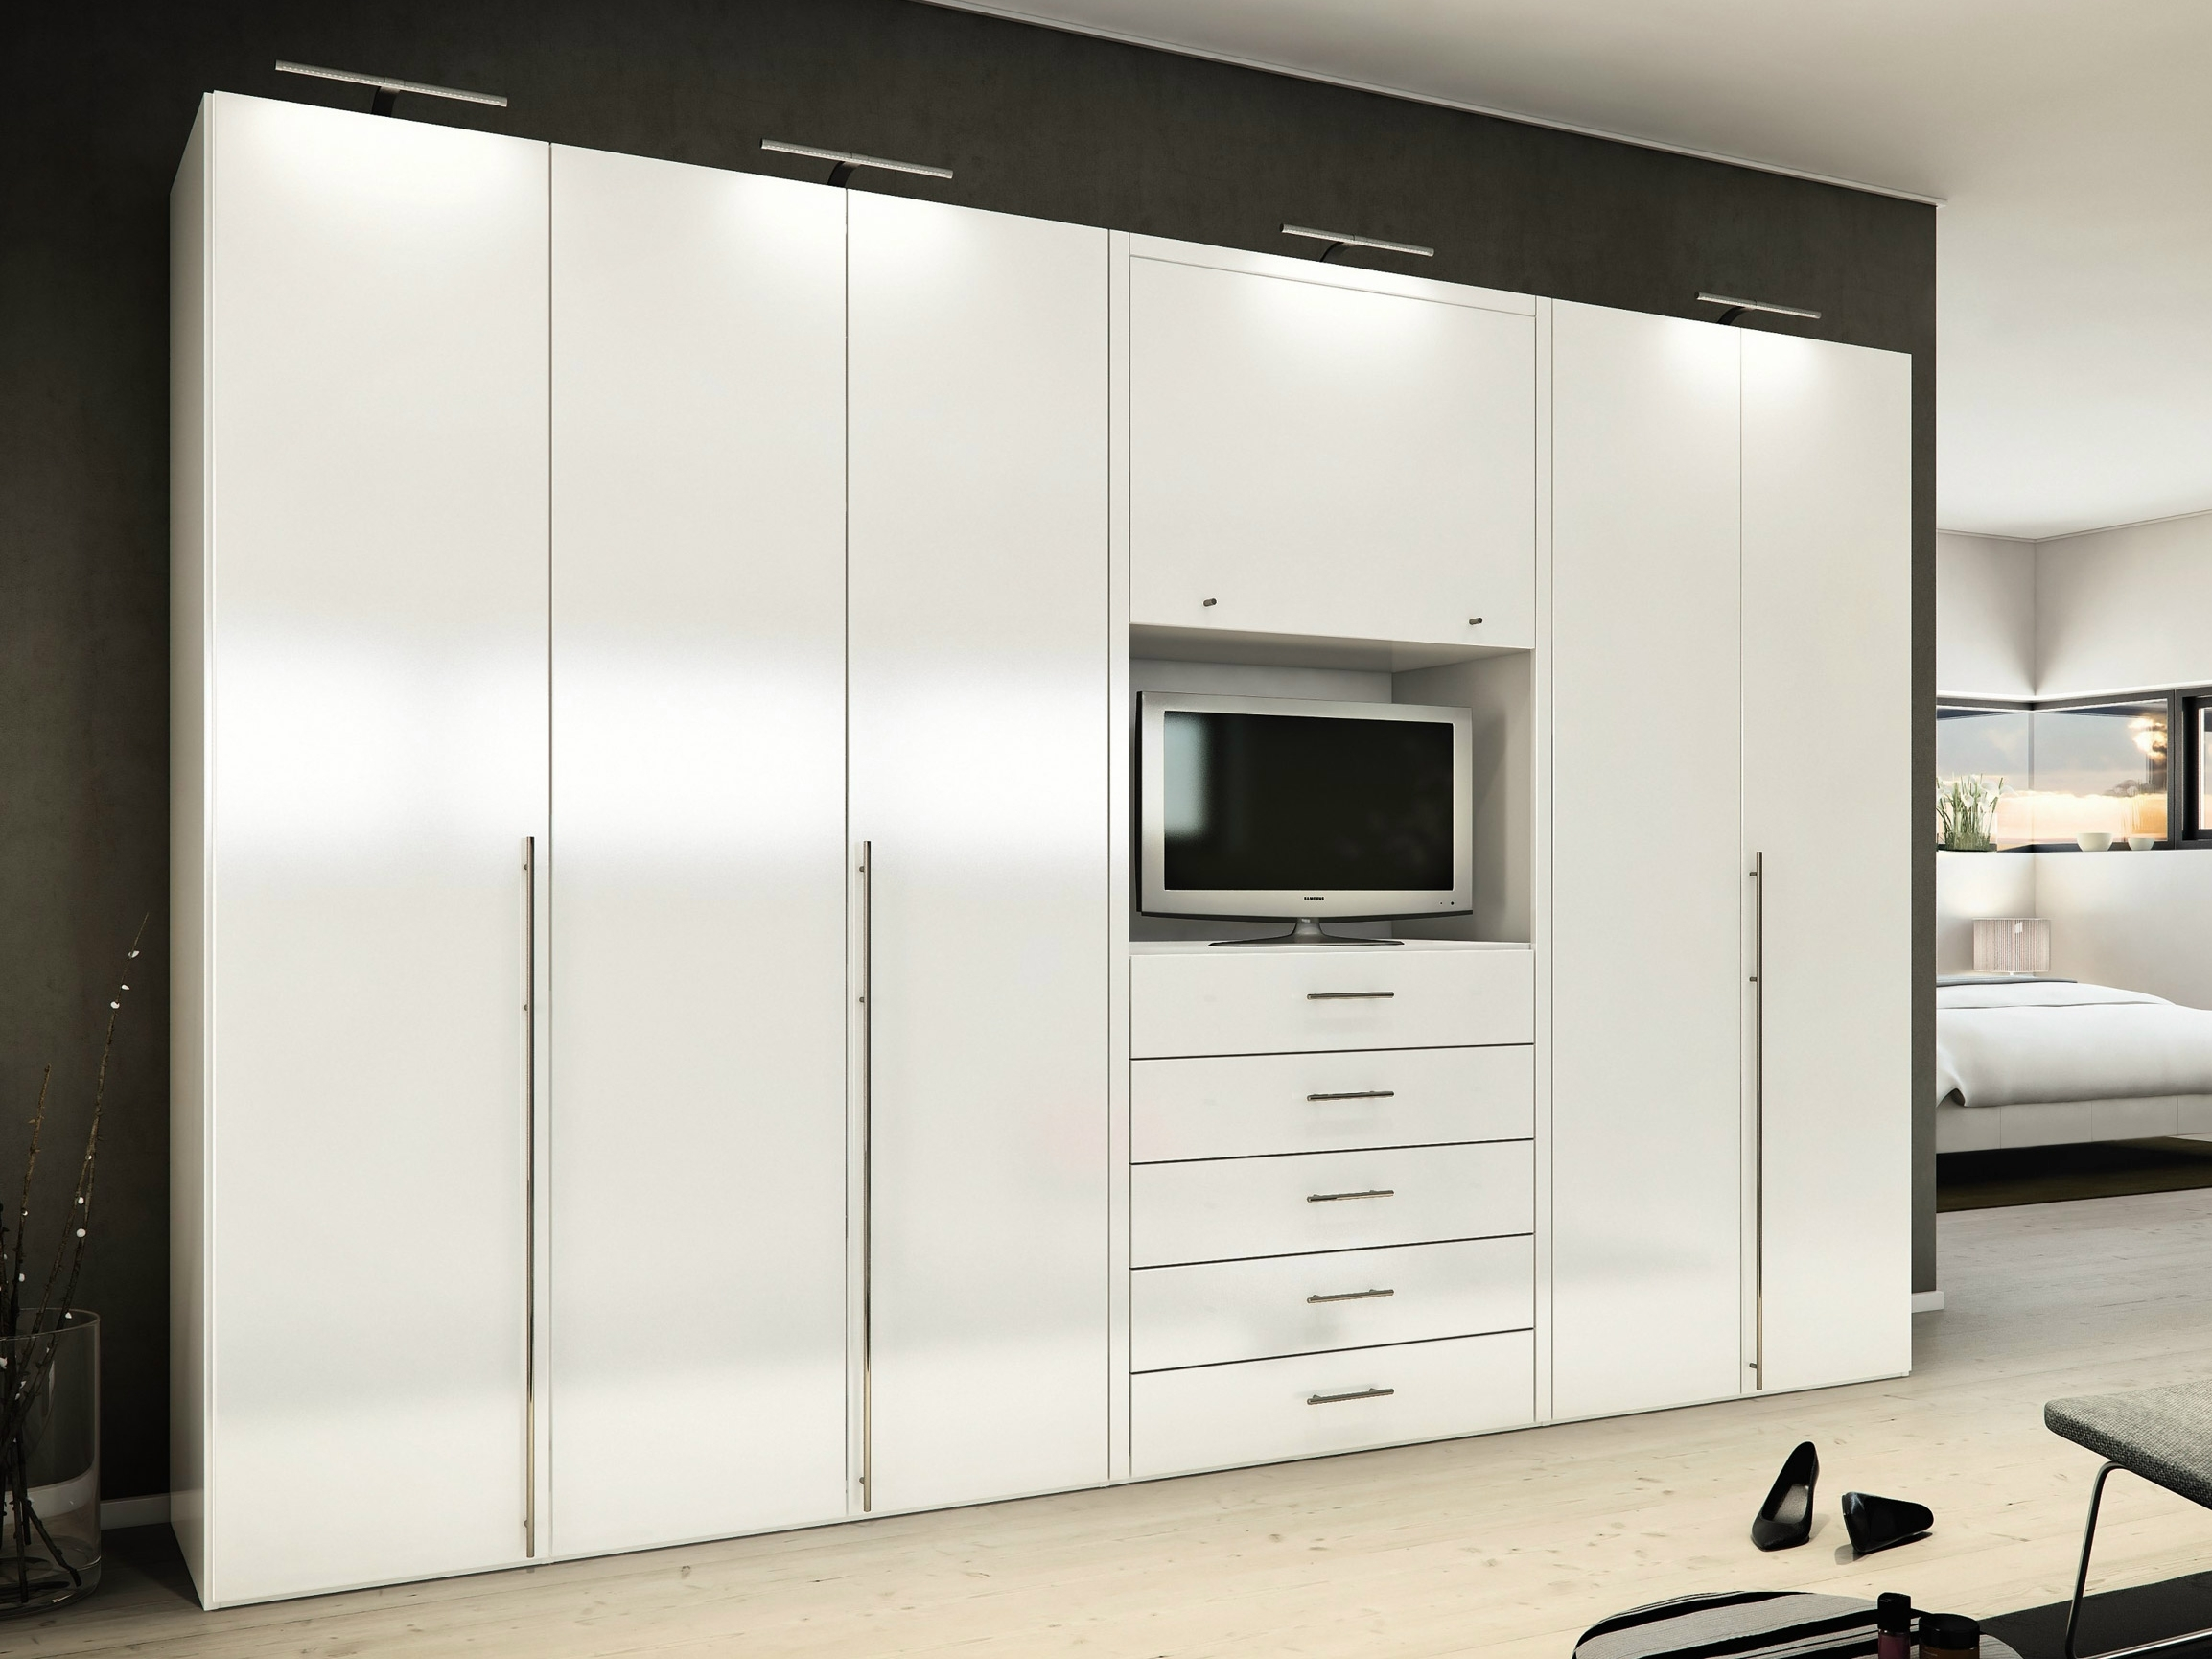 10 Ideas Of Built In Wardrobes With Tv Space